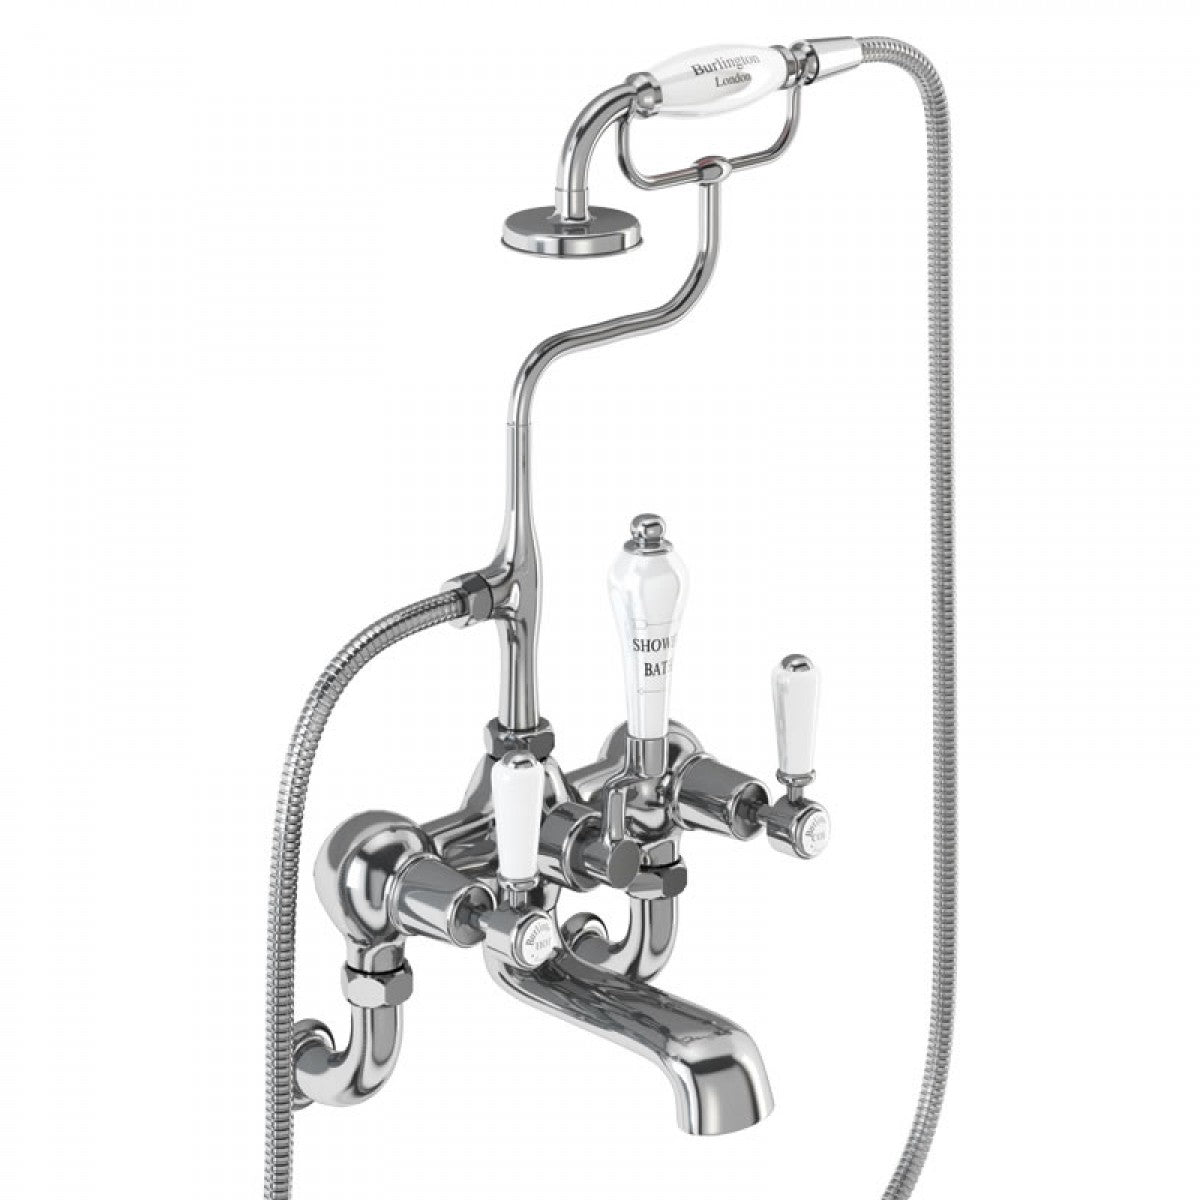 BURLINGTON KENSINGTON WALL MOUNTED BATH SHOWER MIXER WITH S ADJUSTER